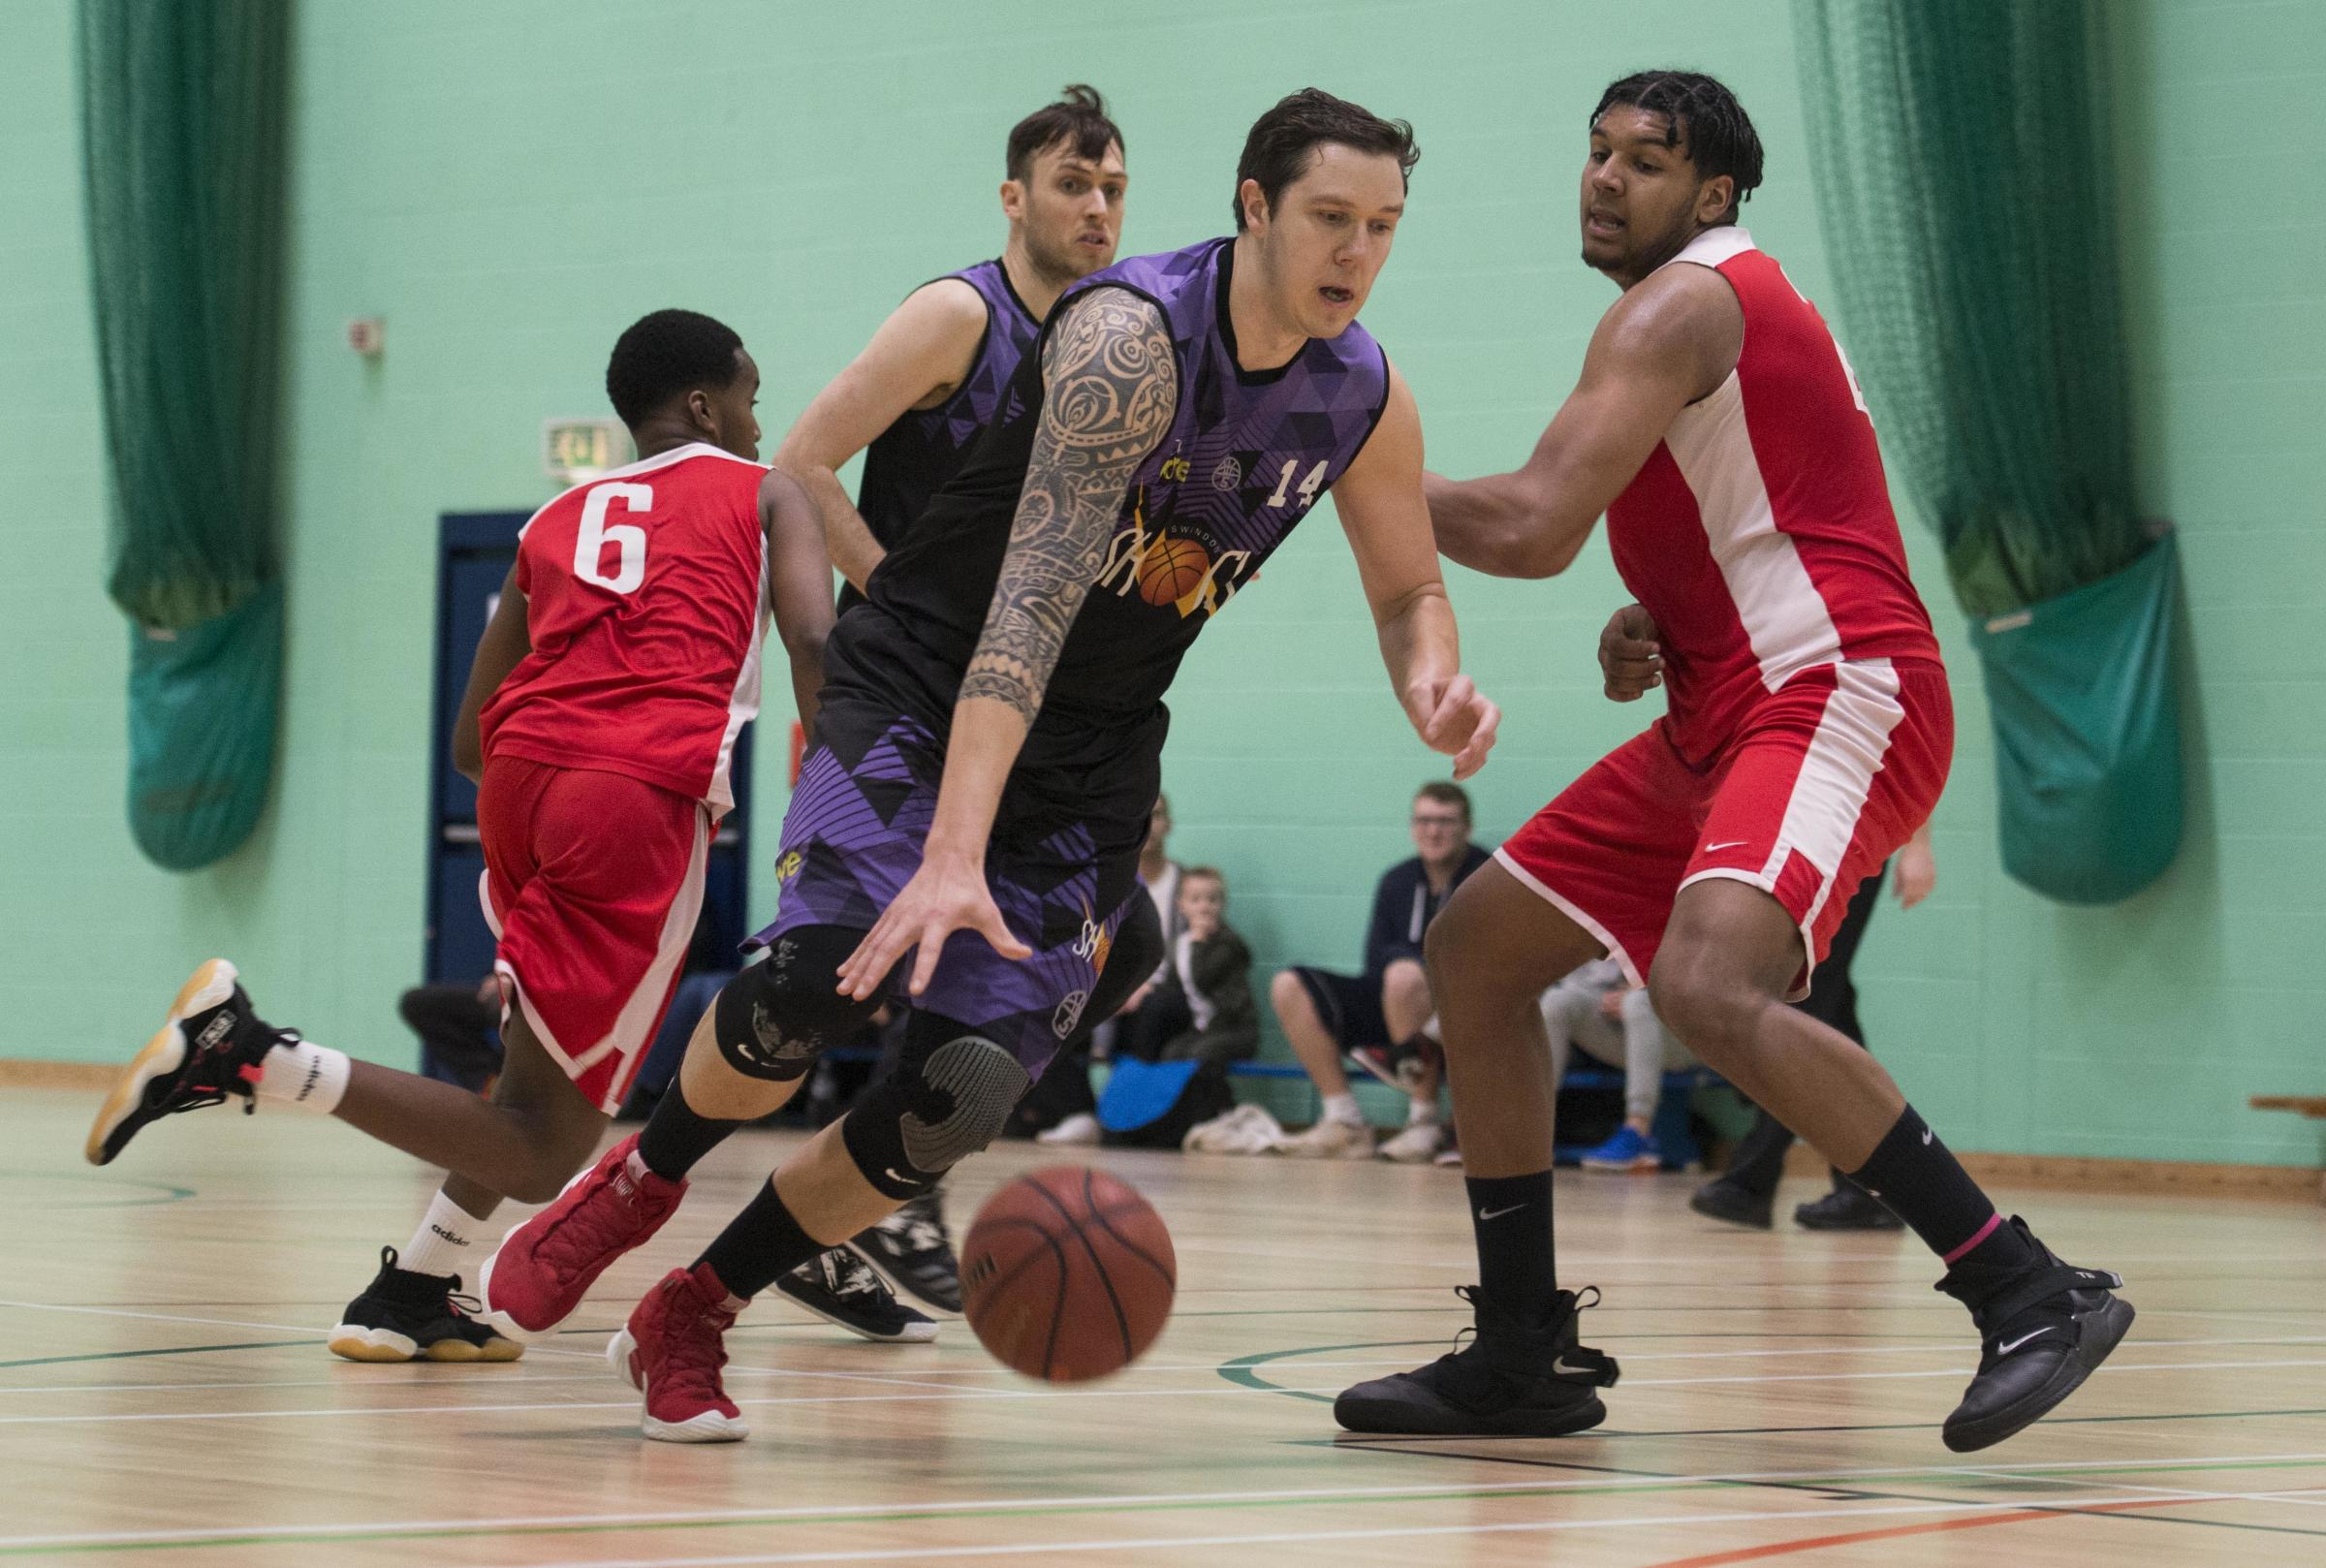 Matt Ford (purple) powers forward for Swindon Shock in their clash at home to Barking Abbey on Saturday                              Picture: WWW.CLAREGREENPHOTOGRAPHY.COM